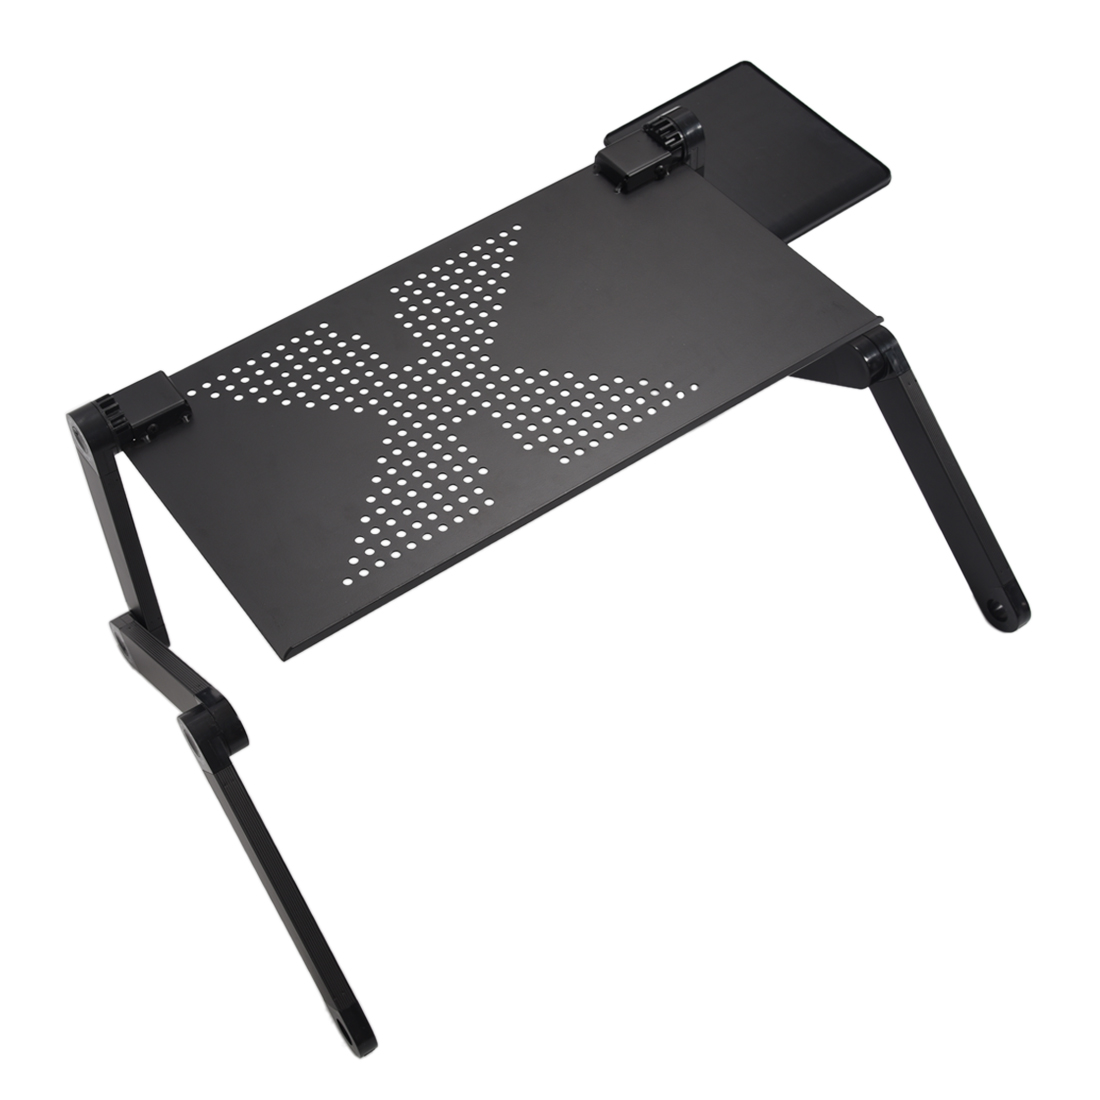 Portable Foldable Adjustable Laptop Desk Computer Table Stand Tray For Sofa Bed Black<br>